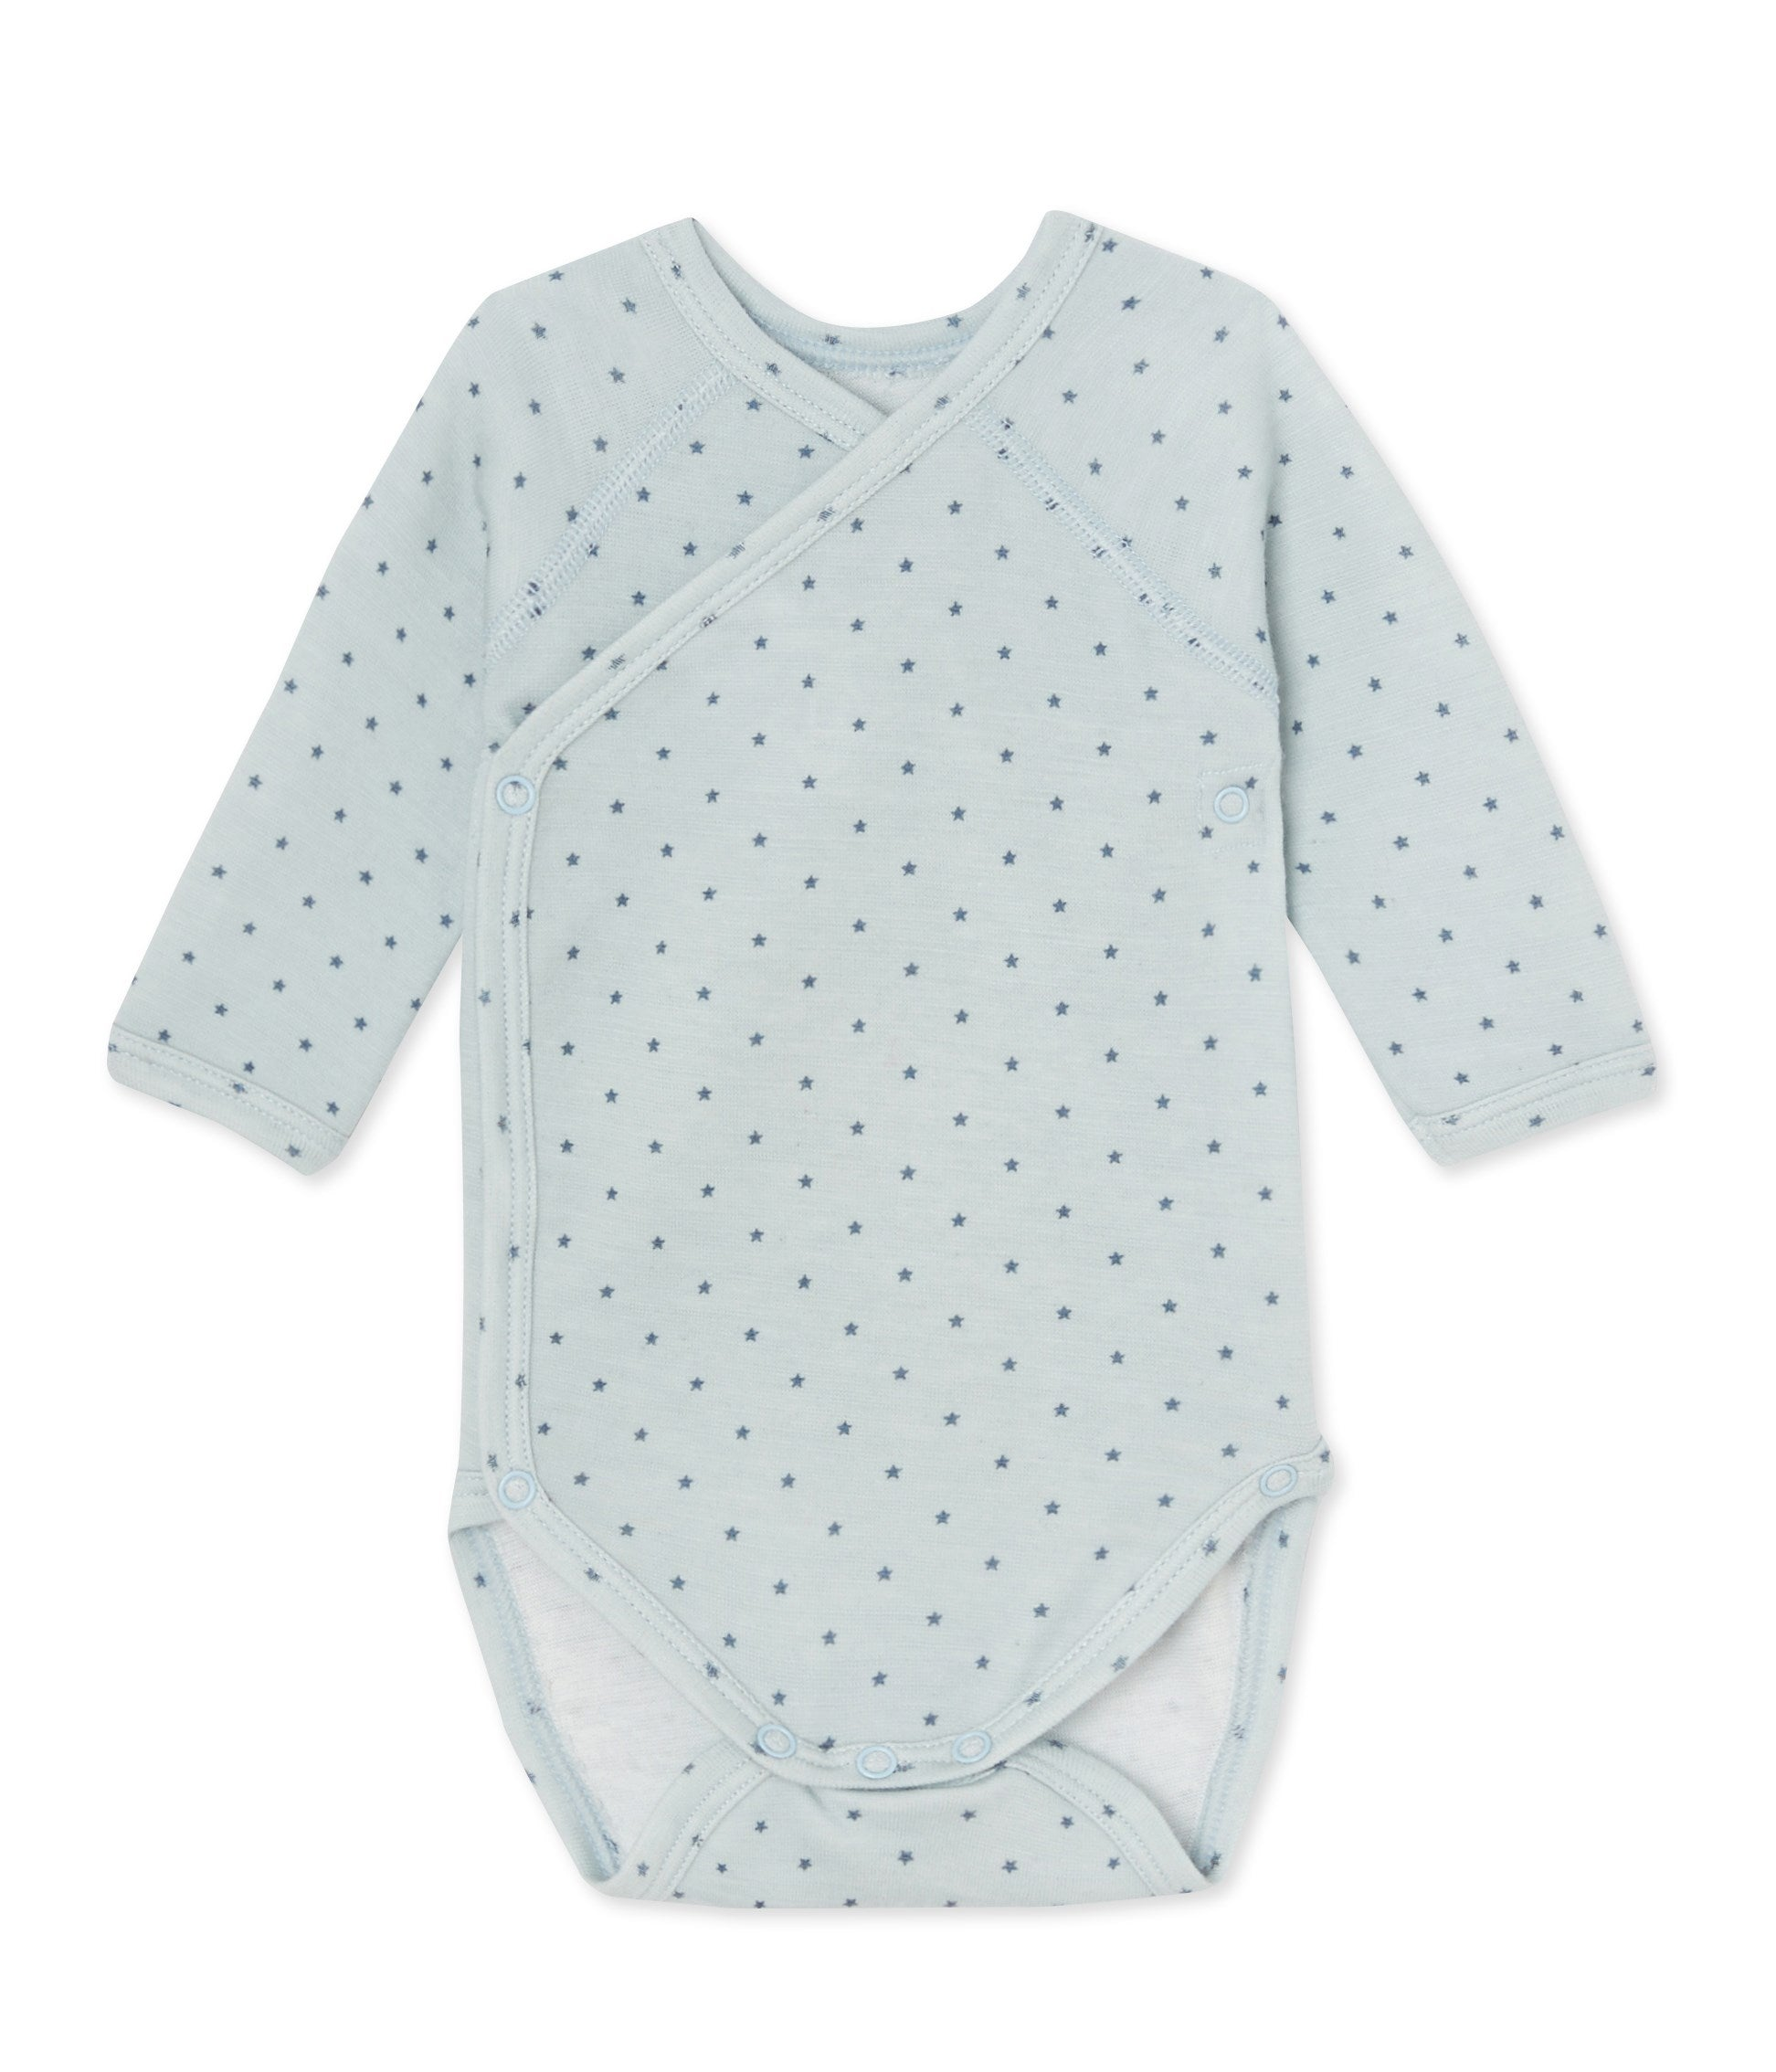 NEWBORN BABY BOYS' LONG-SLEEVED BODYSUIT IN WOOL AND COTTON